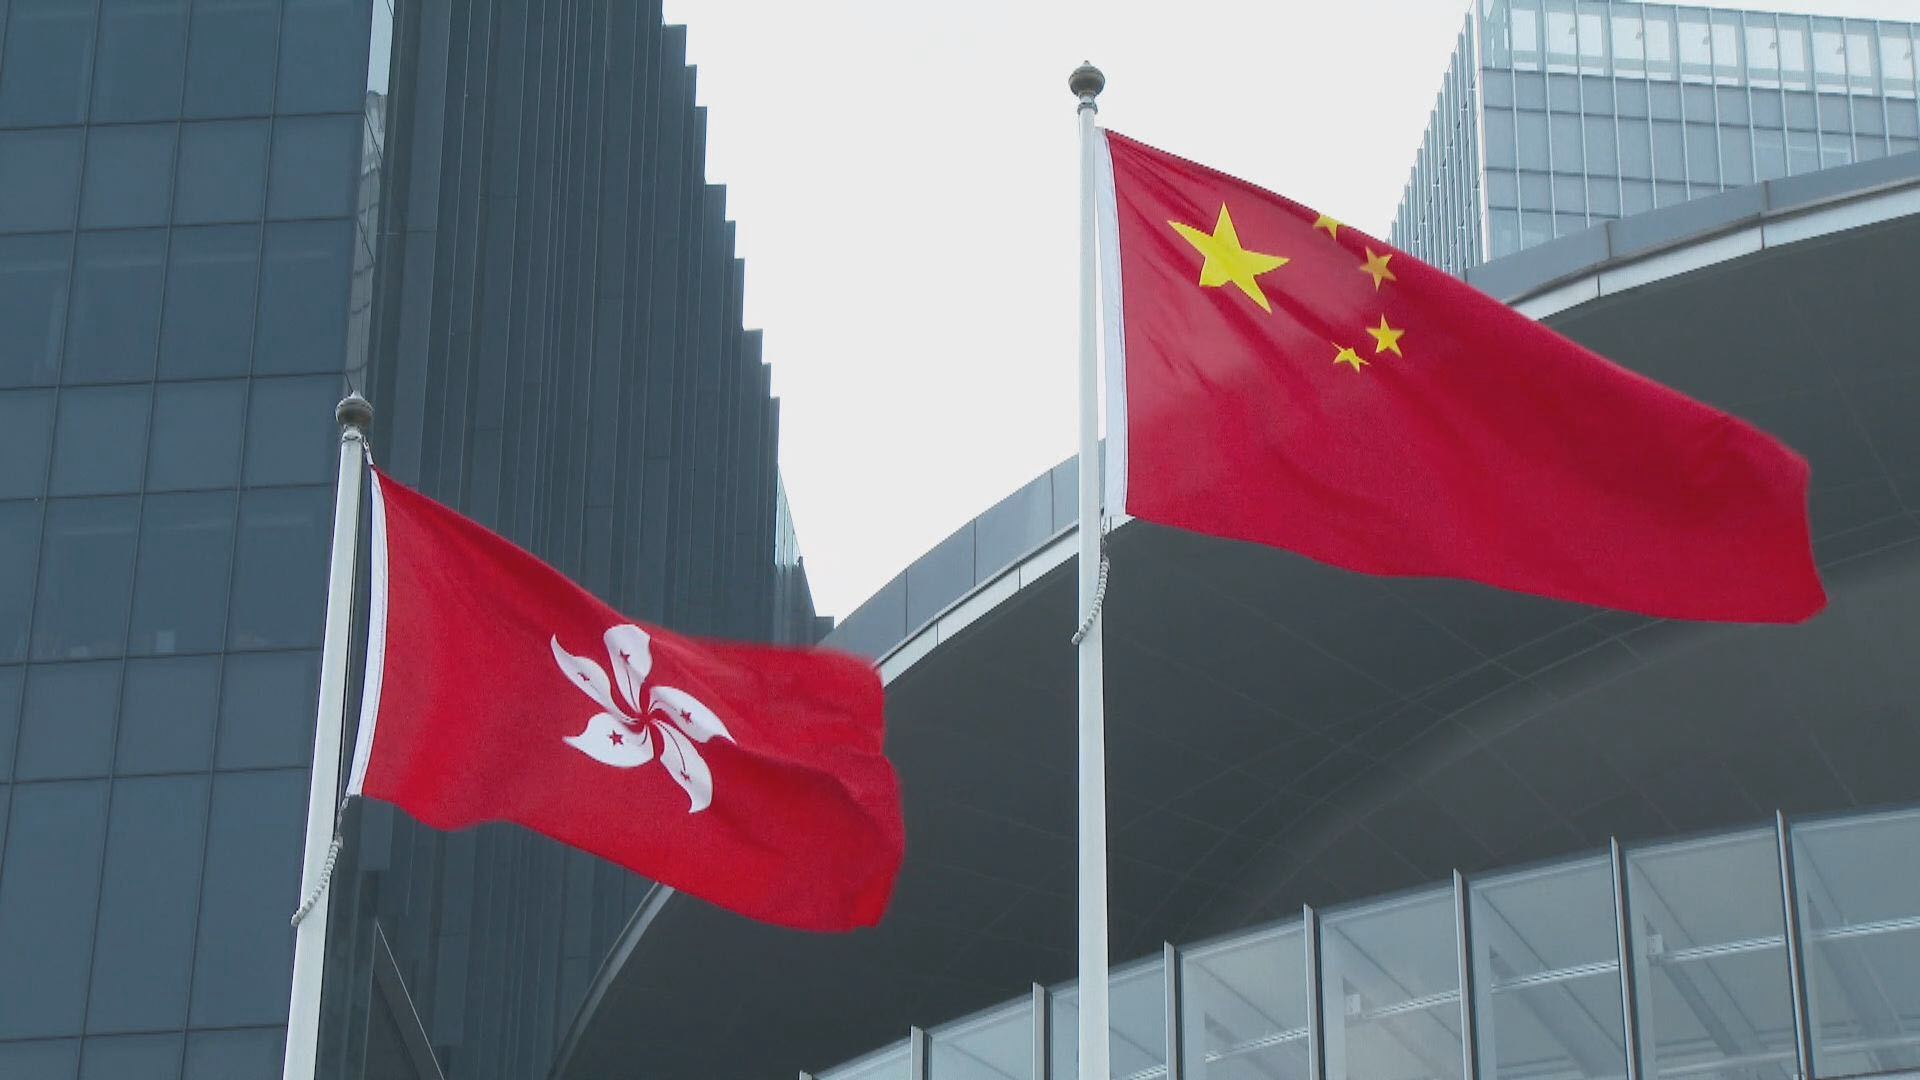 HK people urged to resolutely defend rule of law